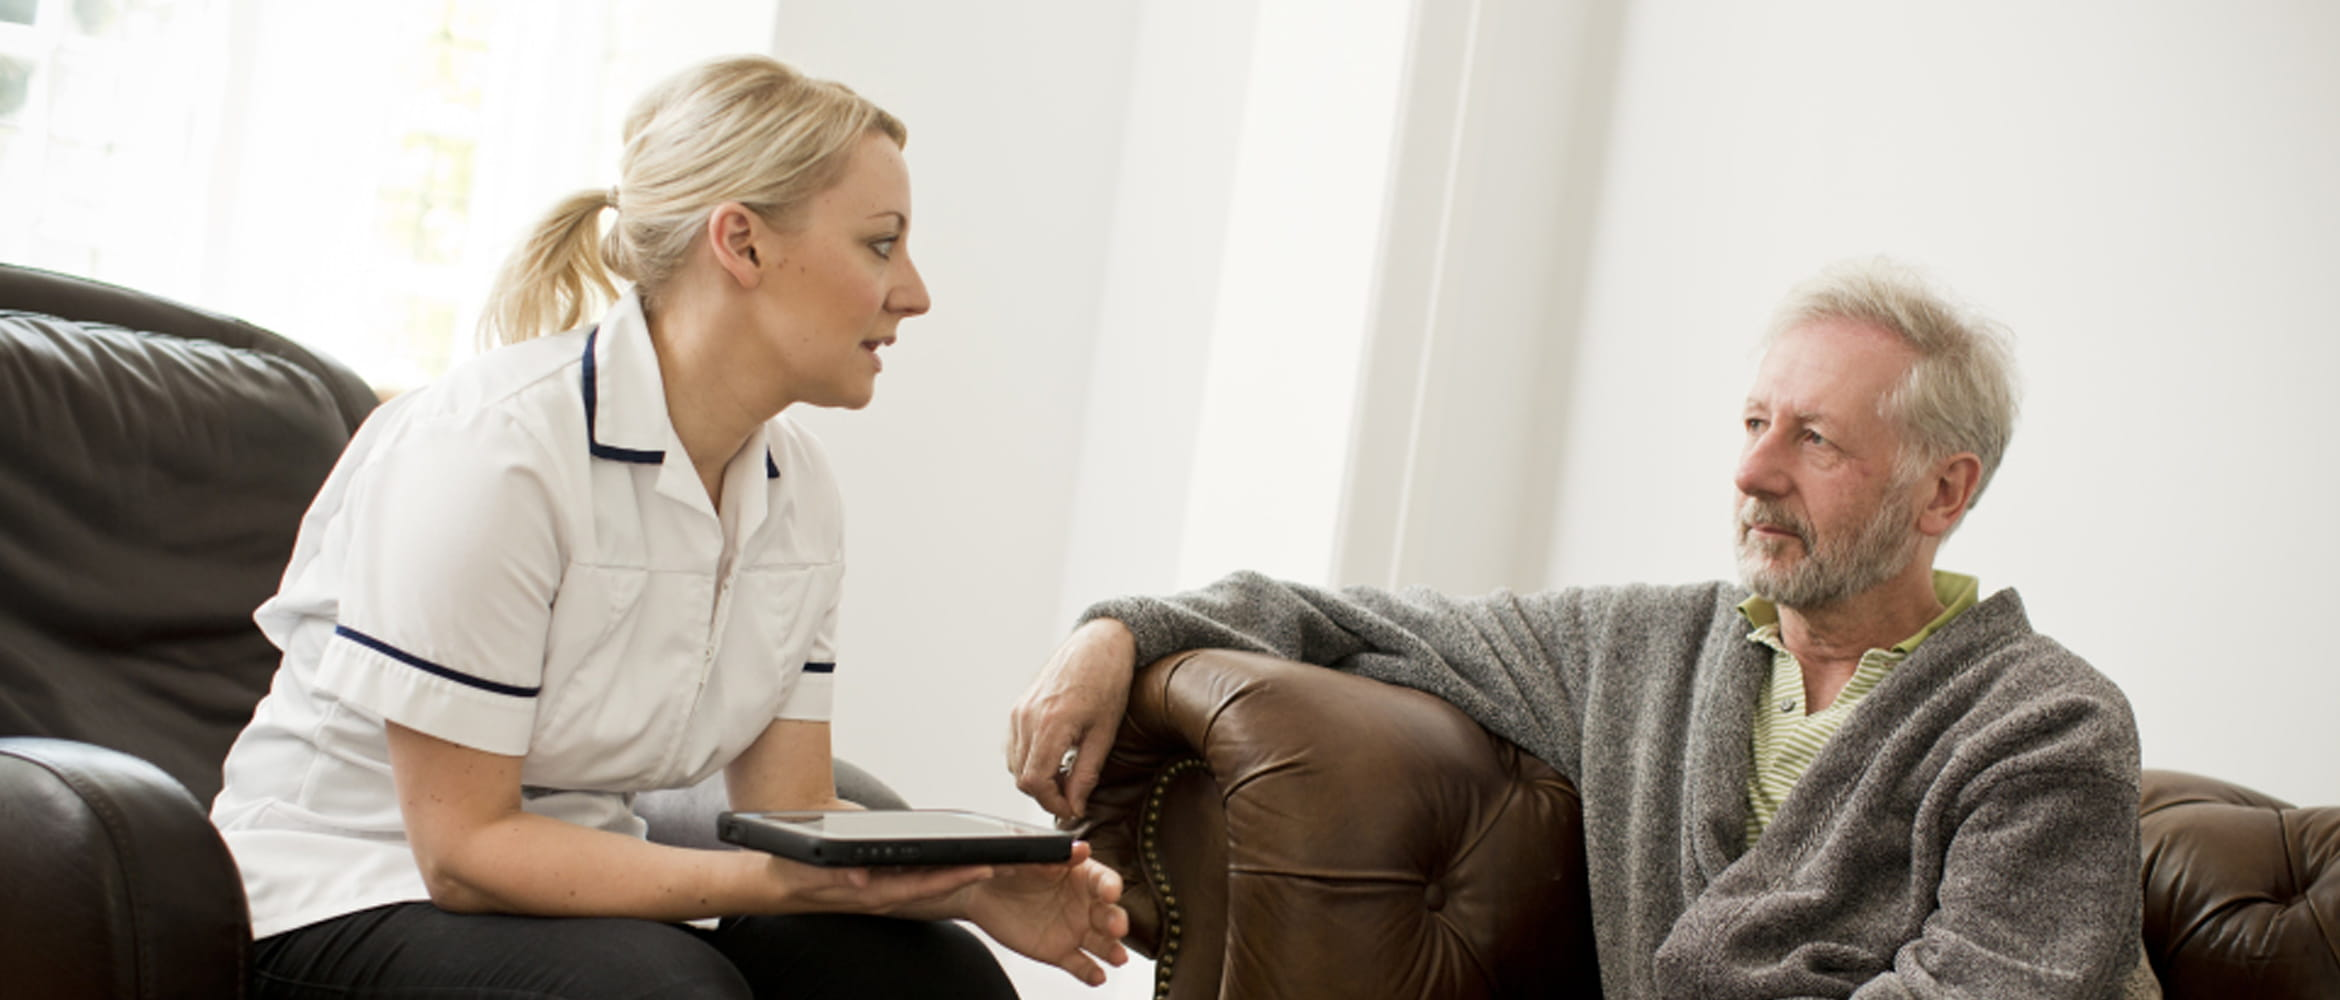 Home healthcare worker and patient